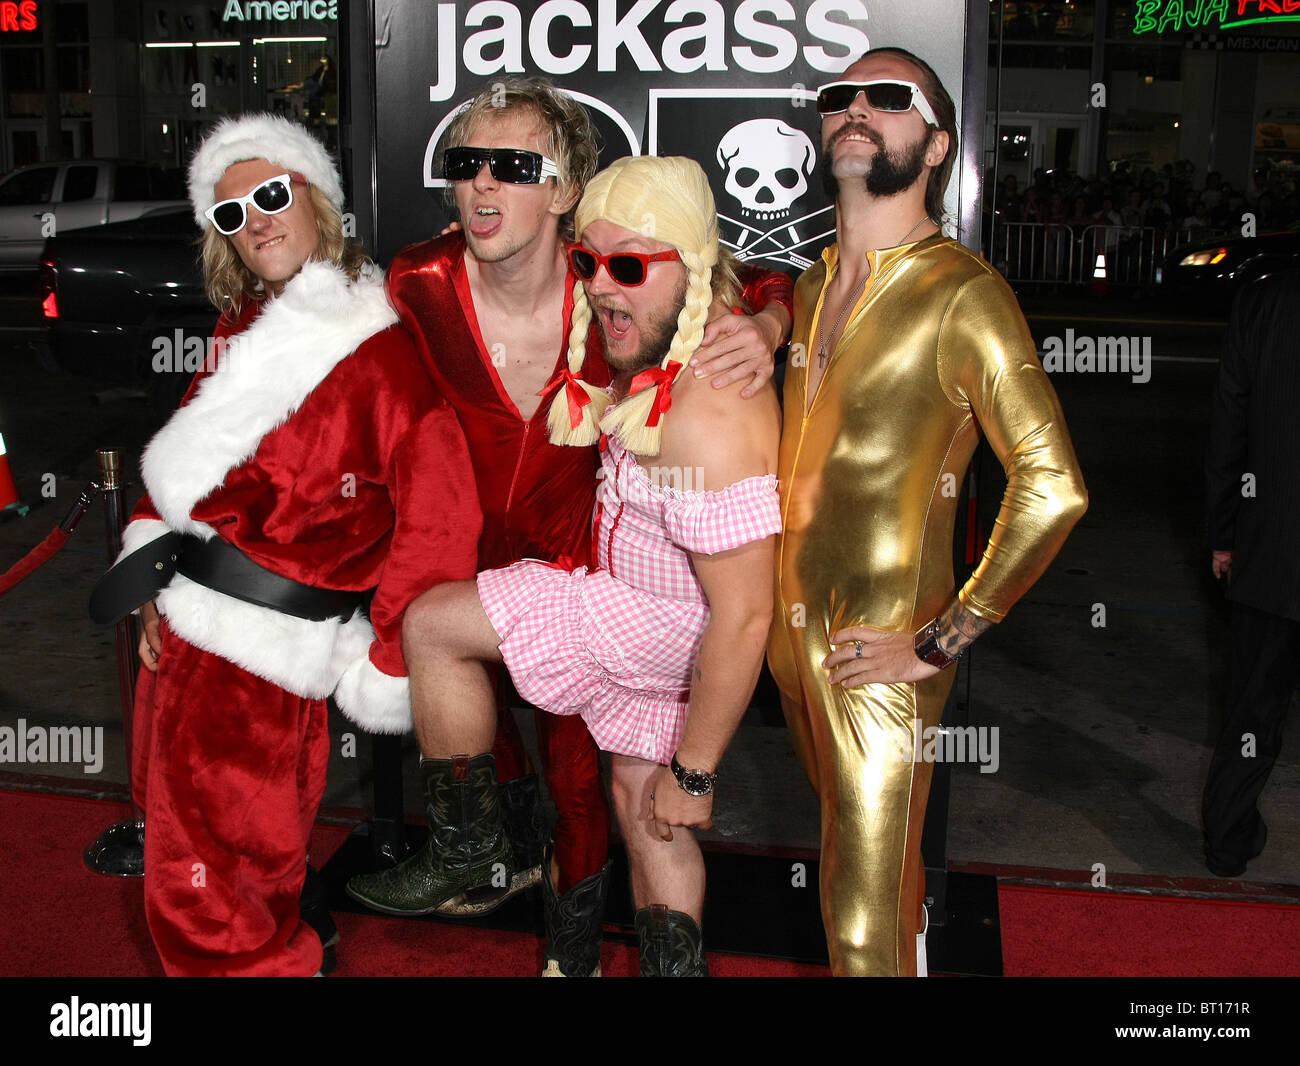 JACKASS GUESTS JACKASS 3D PREMIERE HOLLYWOOD LOS ANGELES CALIFORNIA USA 13 October 2010 - Stock Image